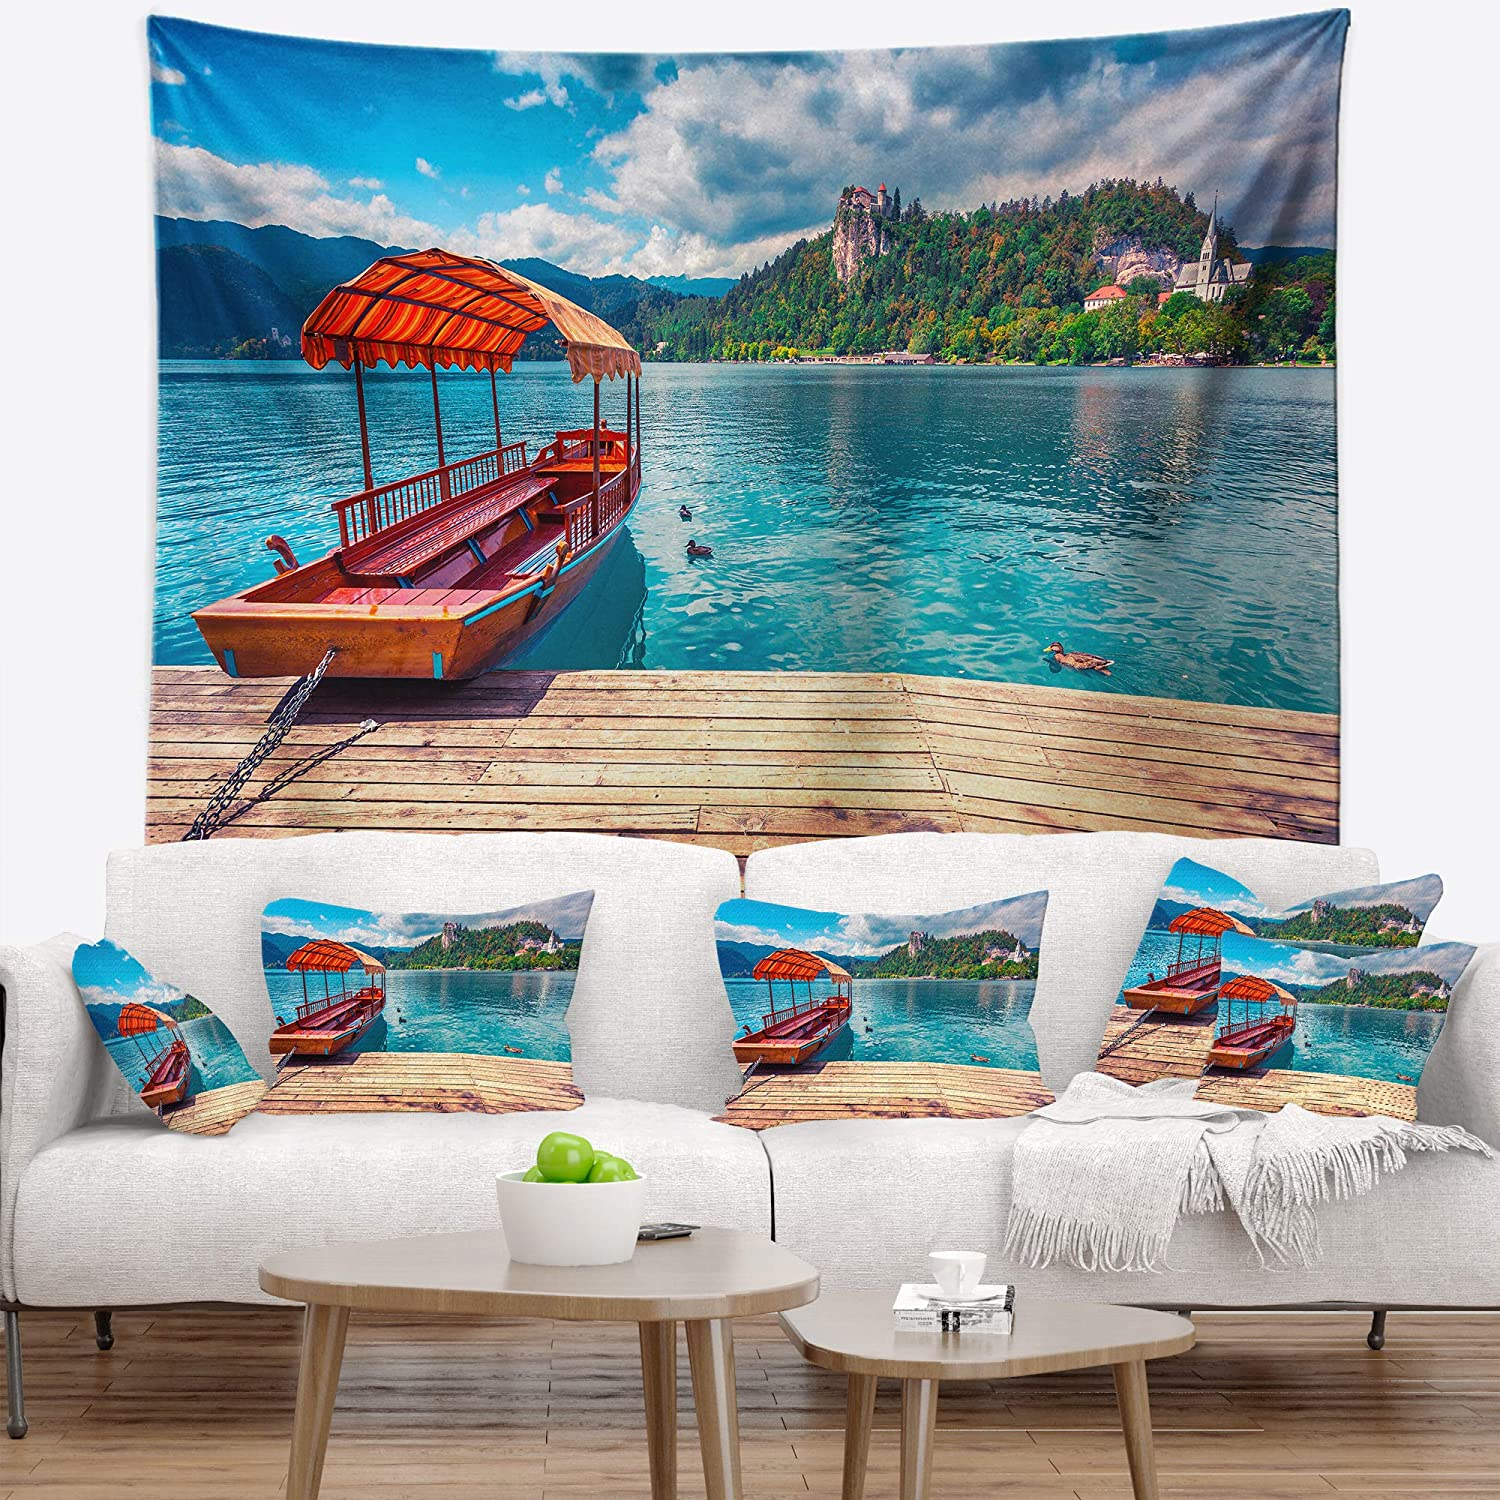 Created On Lightweight Polyester Fabric 60 In X 50 In Designart Tap14574 60 50 Boat In Lake Bled In Julian Alps Landscape Blanket Décor Art For Home And Office Wall Tapestry Large